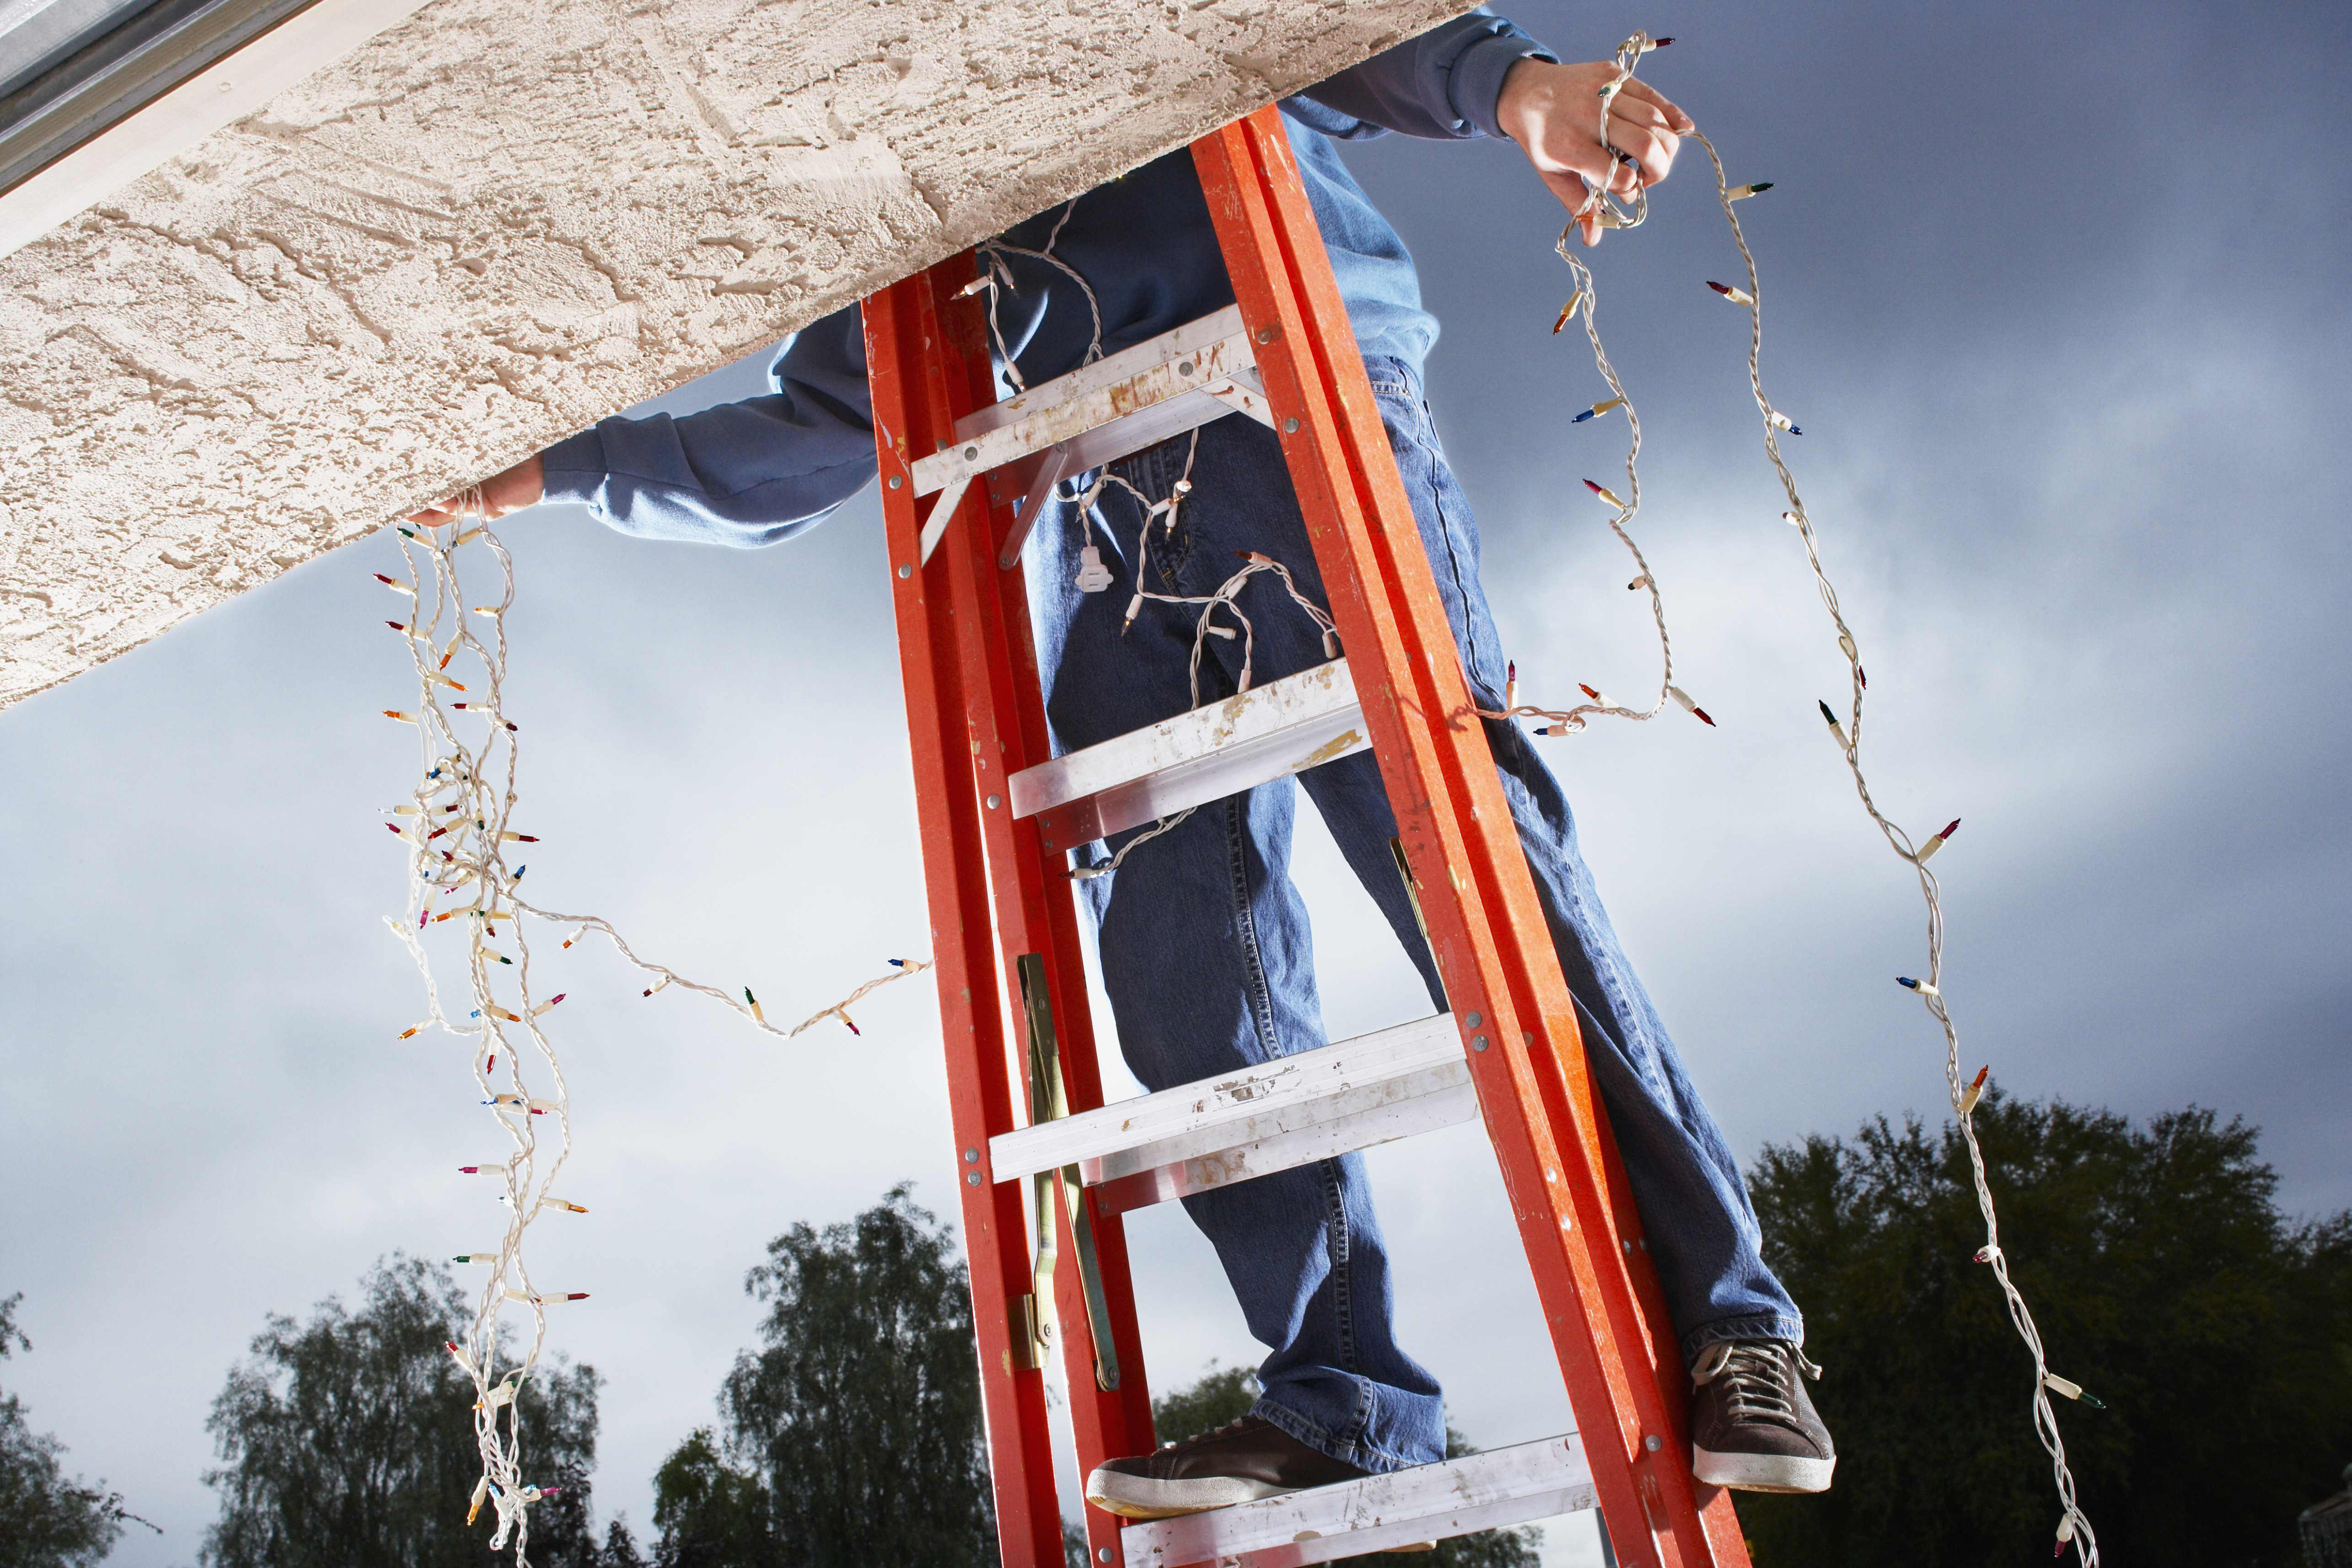 Ladder safety how to avoid falls and injuries Hanging christmas lights